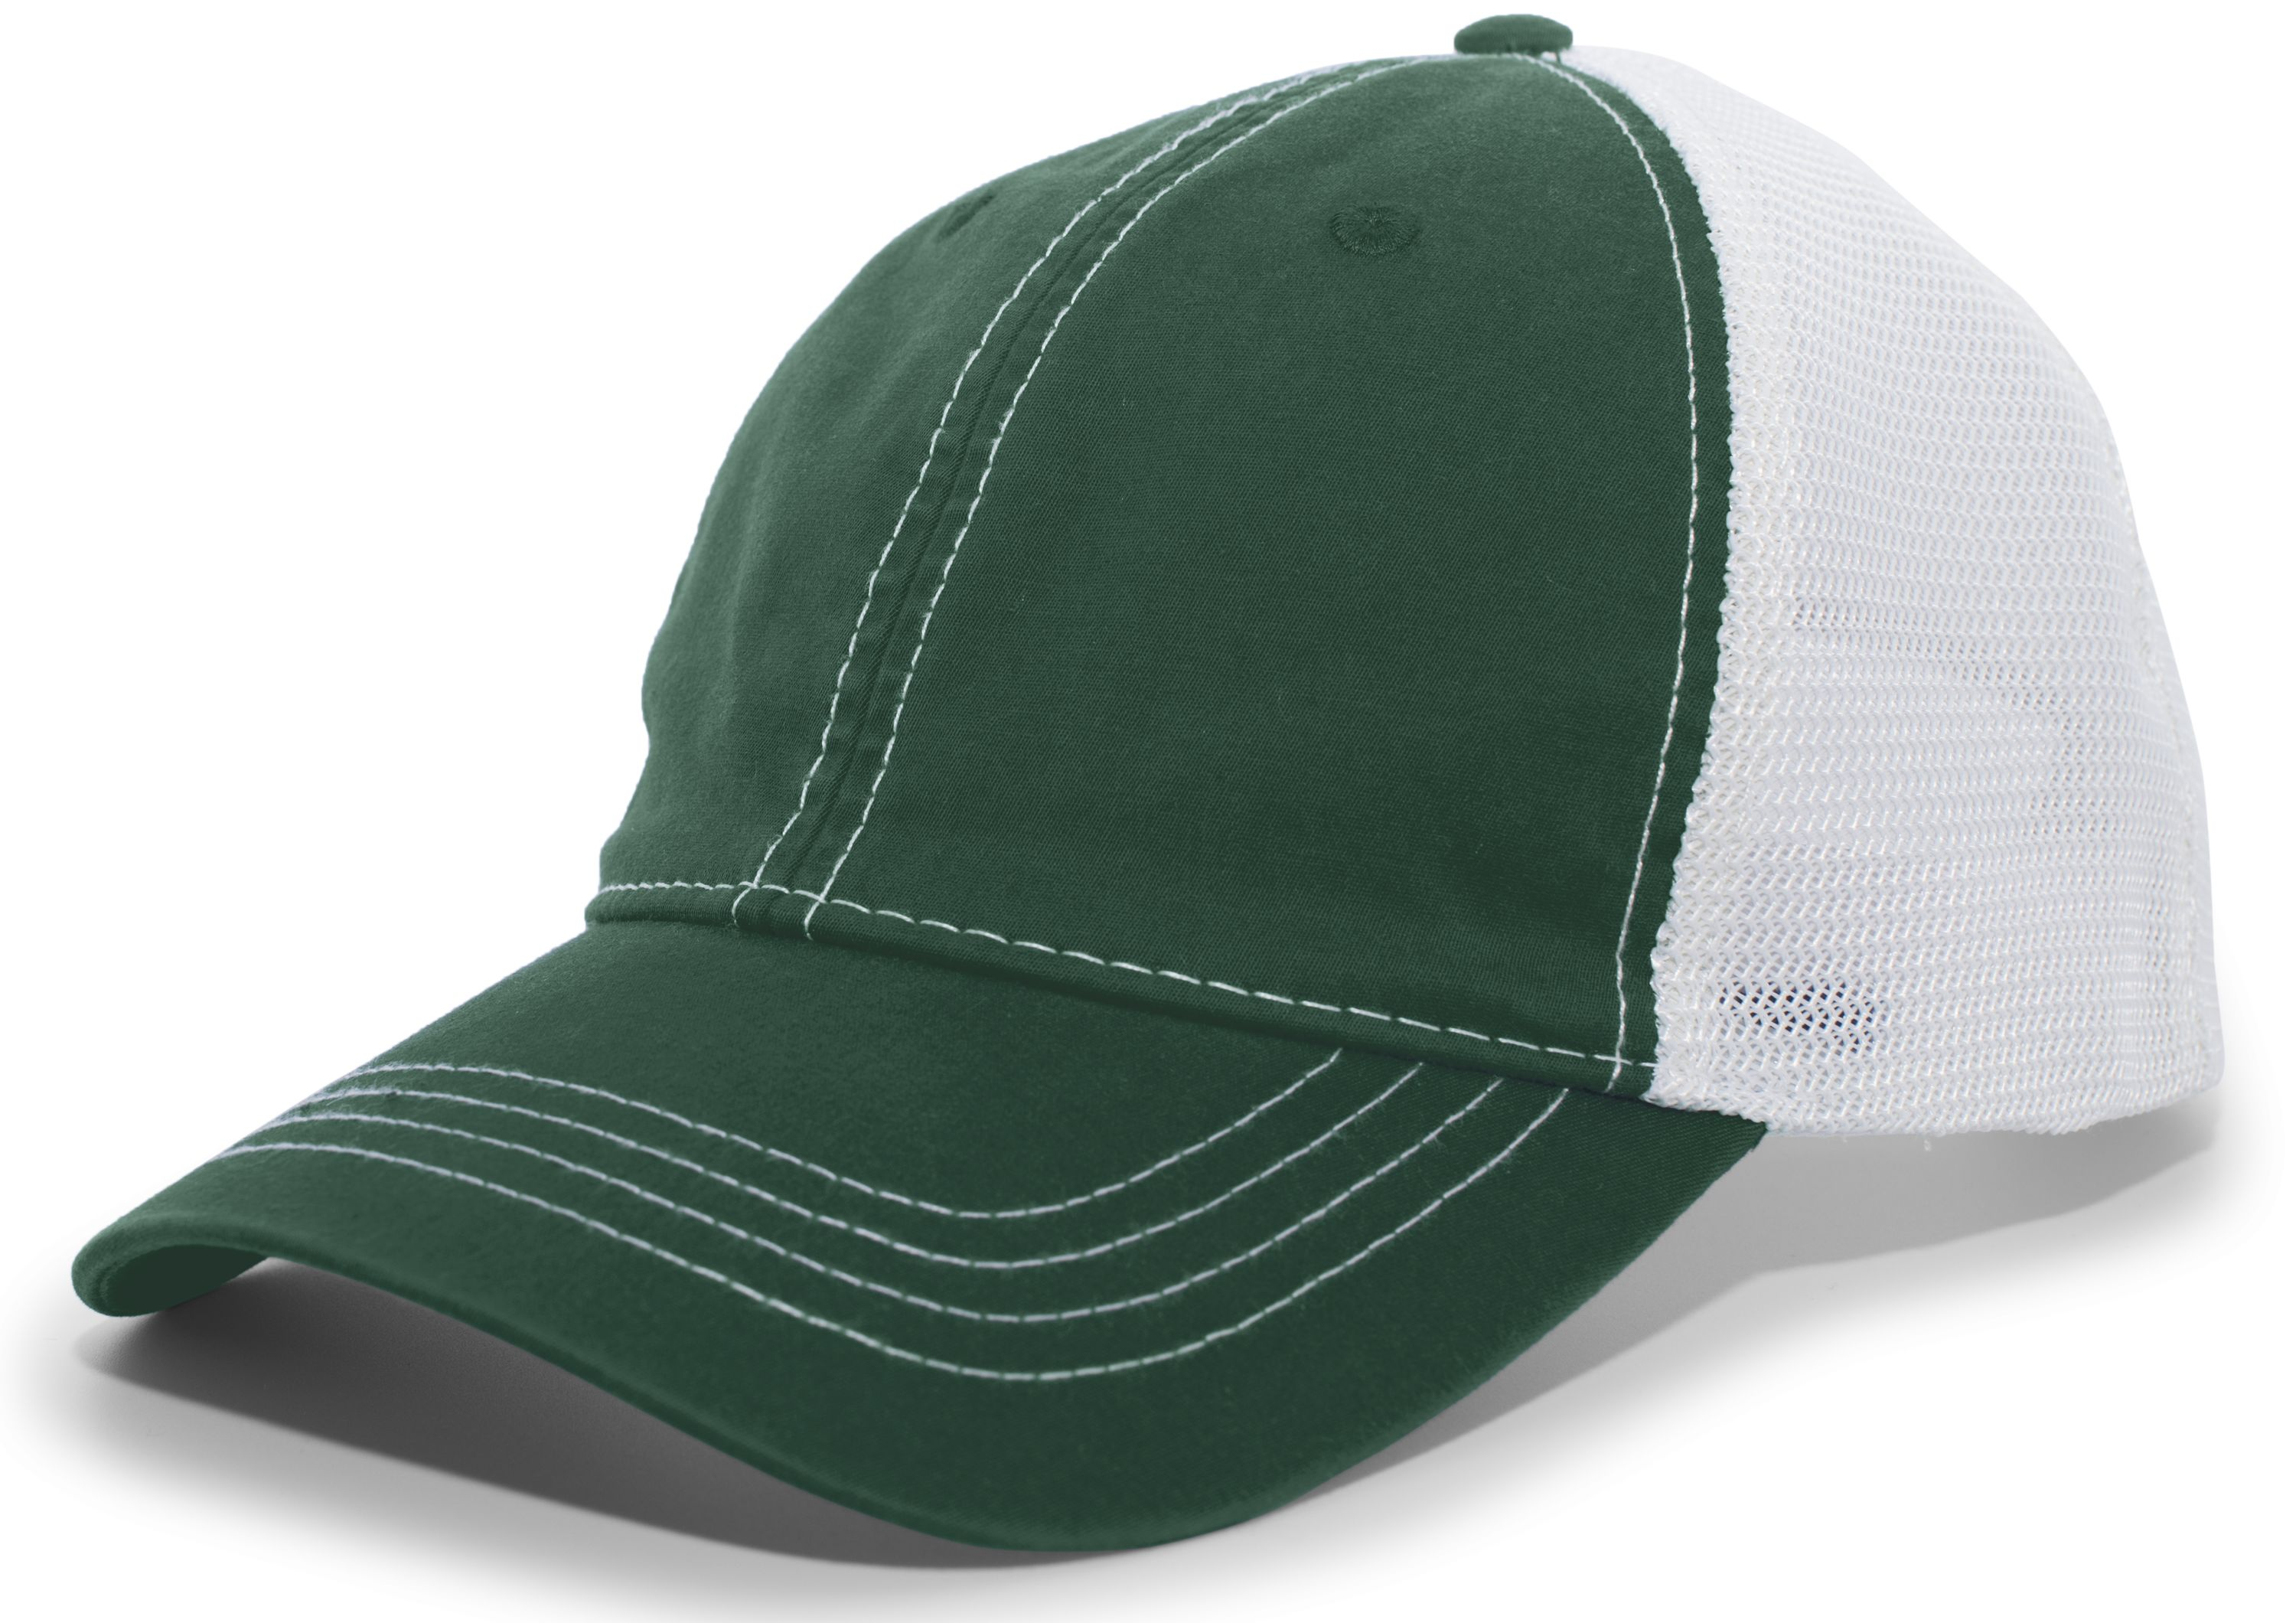 Vintage Trucker Snapback Cap - DARK GREEN/WHITE/DARK GREEN